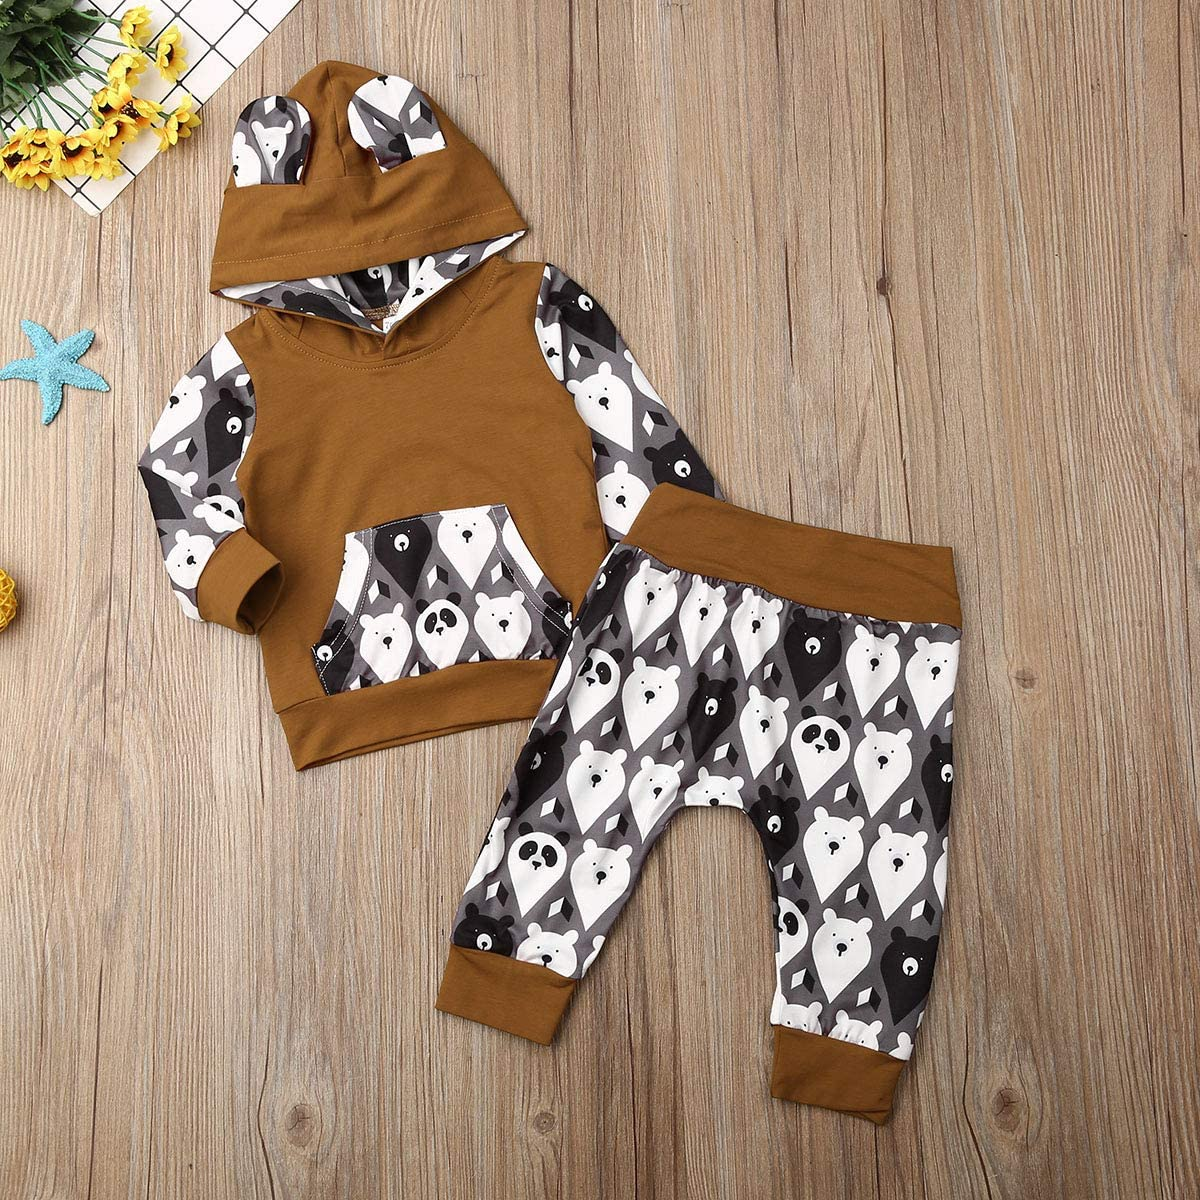 Baby Boys 2 Piece Outfits Long Sleeve Hoodie Pullover Top + Pants Bear Toddlerr Infant Boy Clothes Set